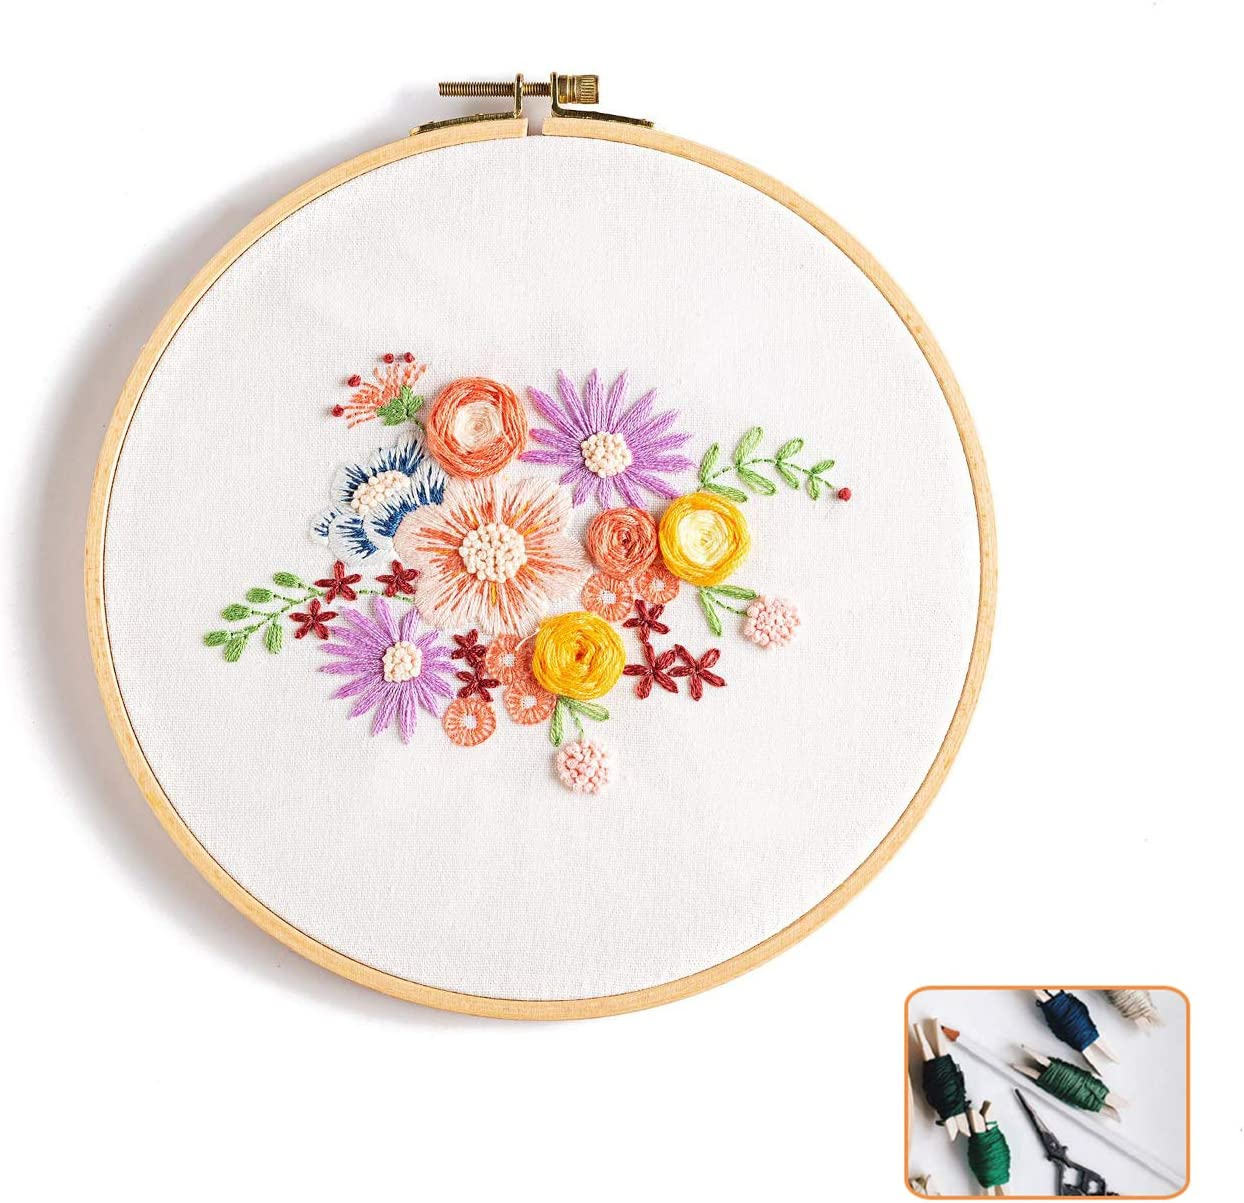 Bamboo Embroidery Hoop Color511212 FUB Full Range of Embroidery Starter Kit with Pattern Stamped Embroidery Kit Including Embroidery Cloth with Pattern Color Threads Needle Kit Blossom